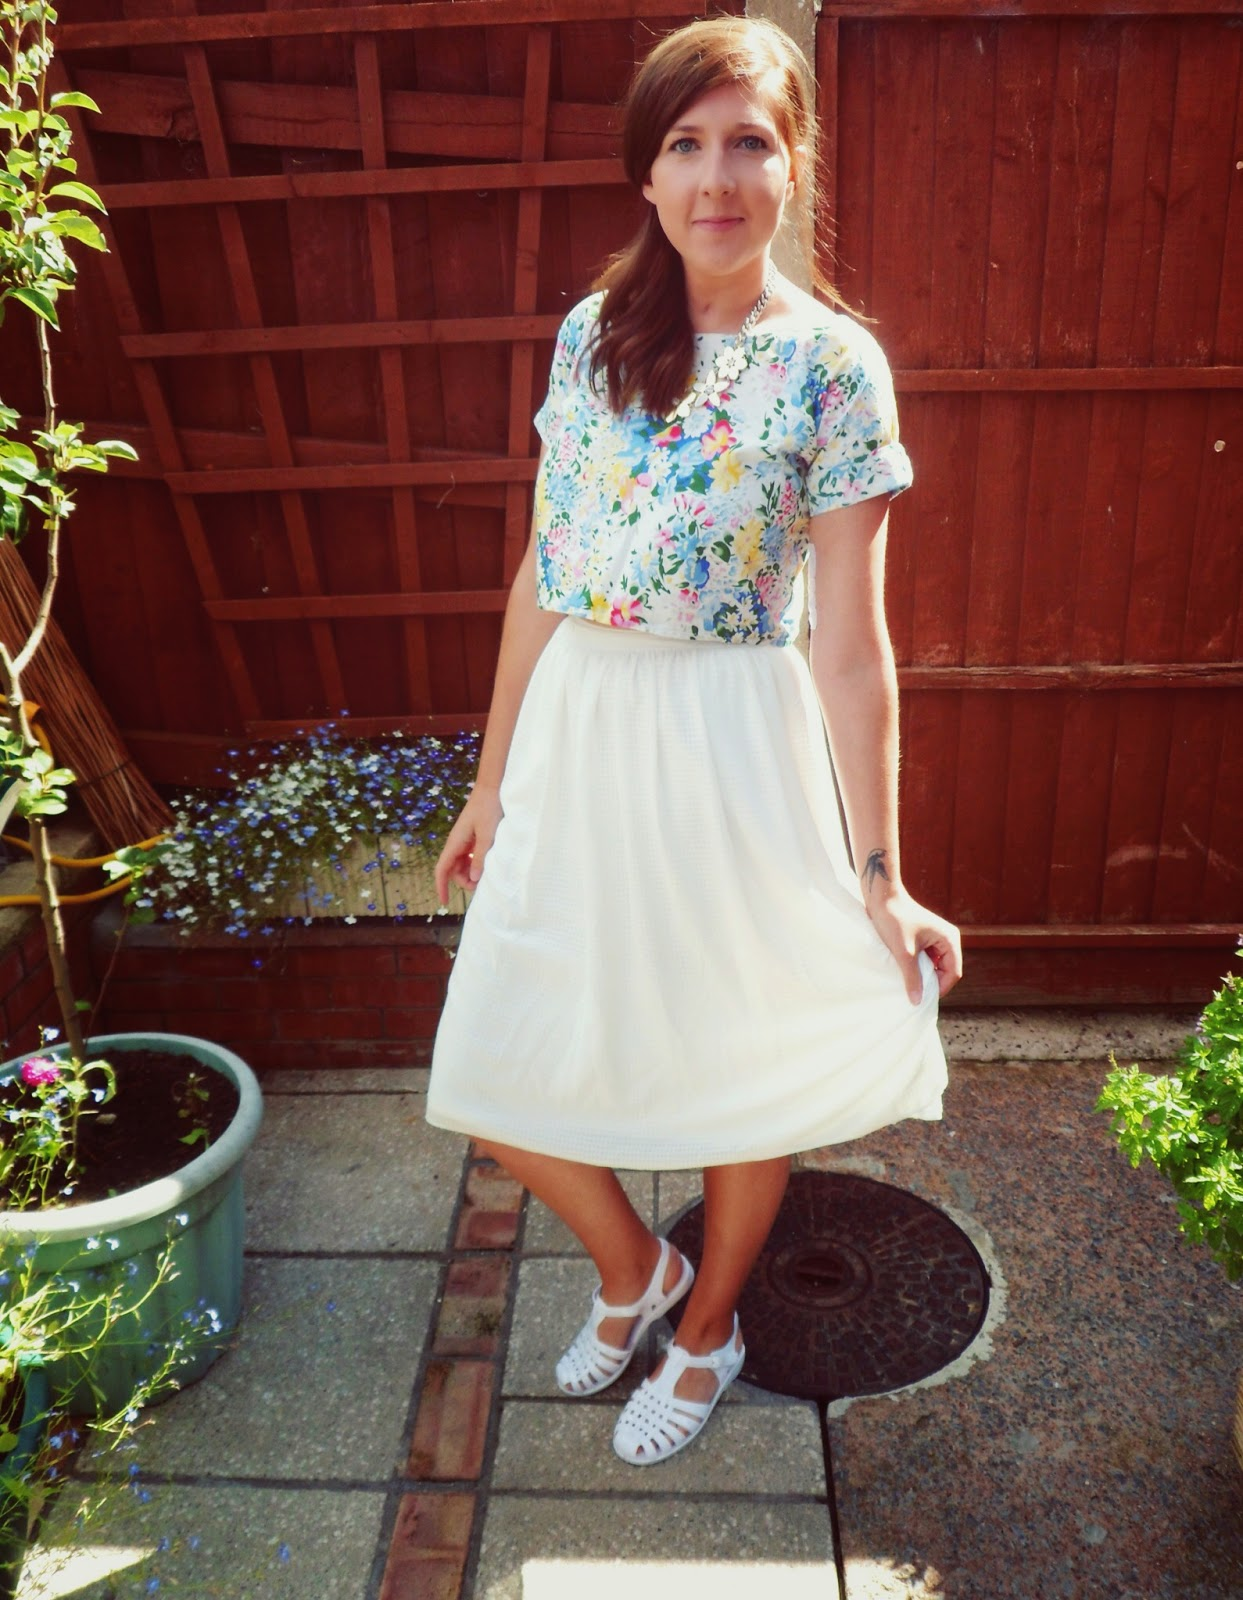 1960s, ASOS, fashionbloggers, fbloggers, handmade, jelly shoes, midi skirt, new look, ootd, outfitoftheday, primark, retro, summer, whatimwearing, wiw,